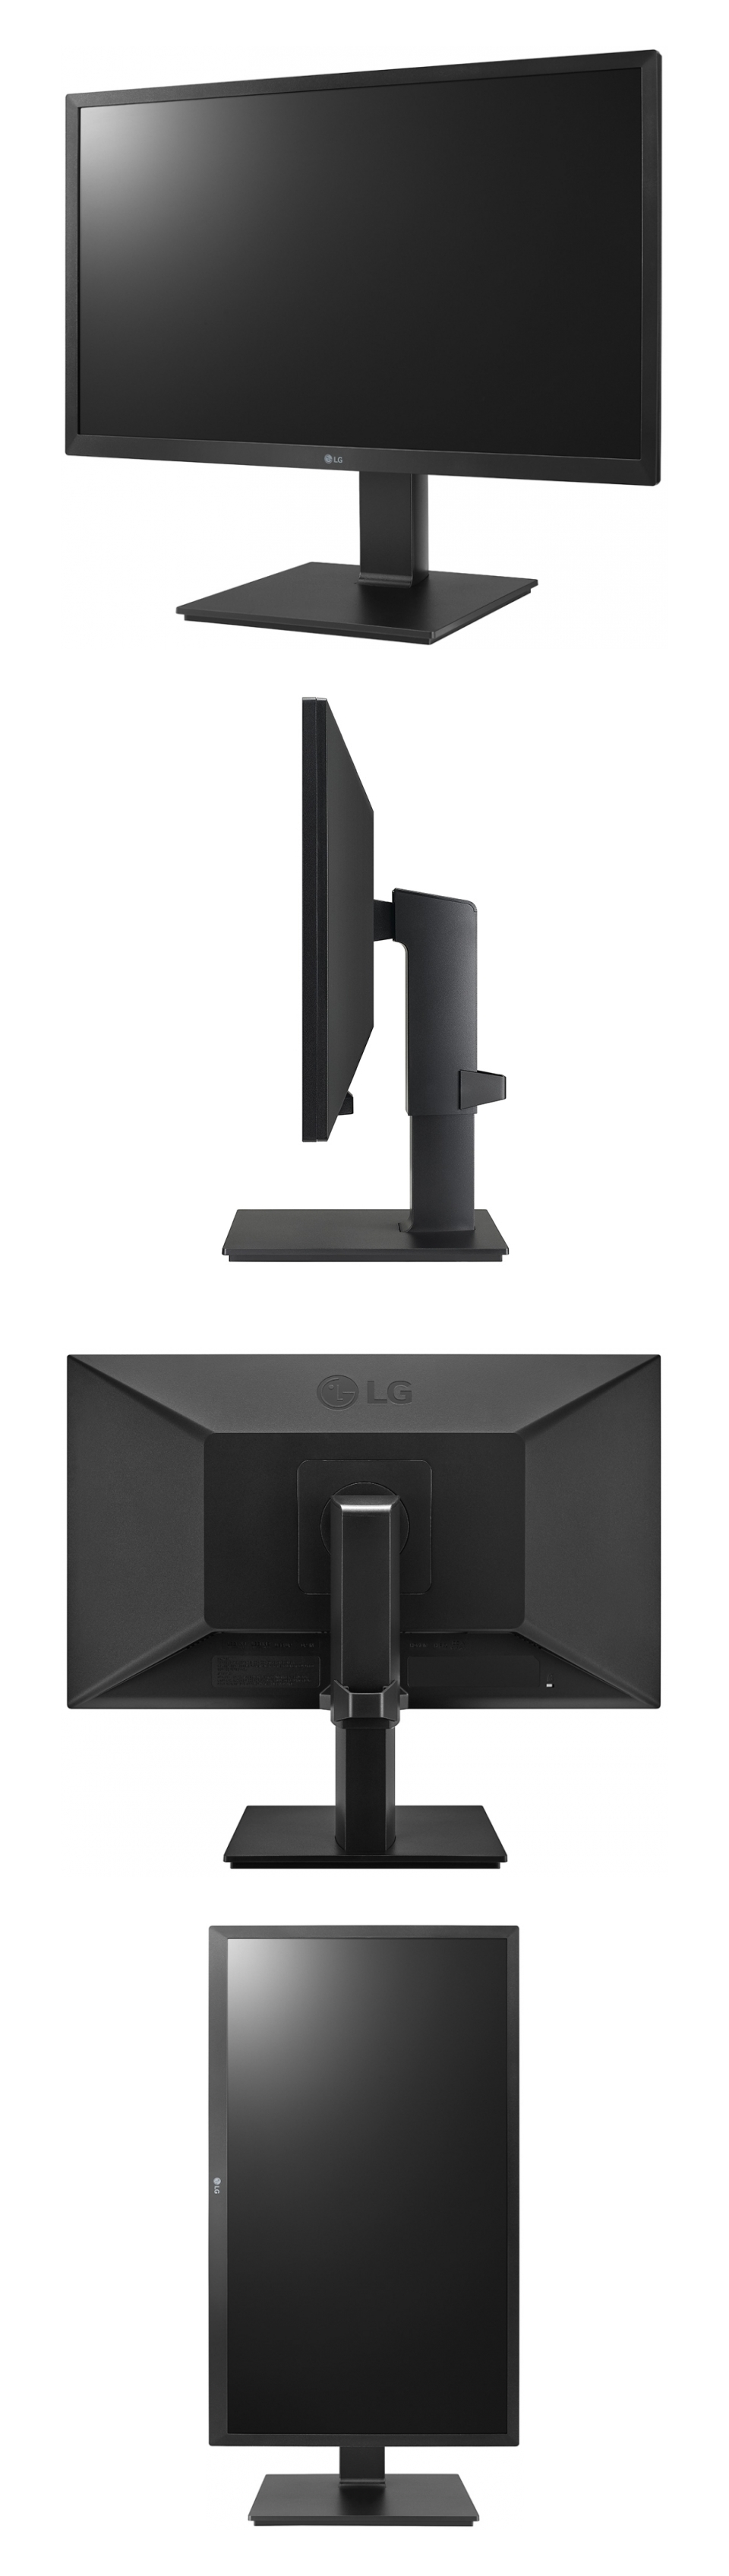 LG 24BL450Y FHD IPS 23.8in Monitor with Built-in Speakers product